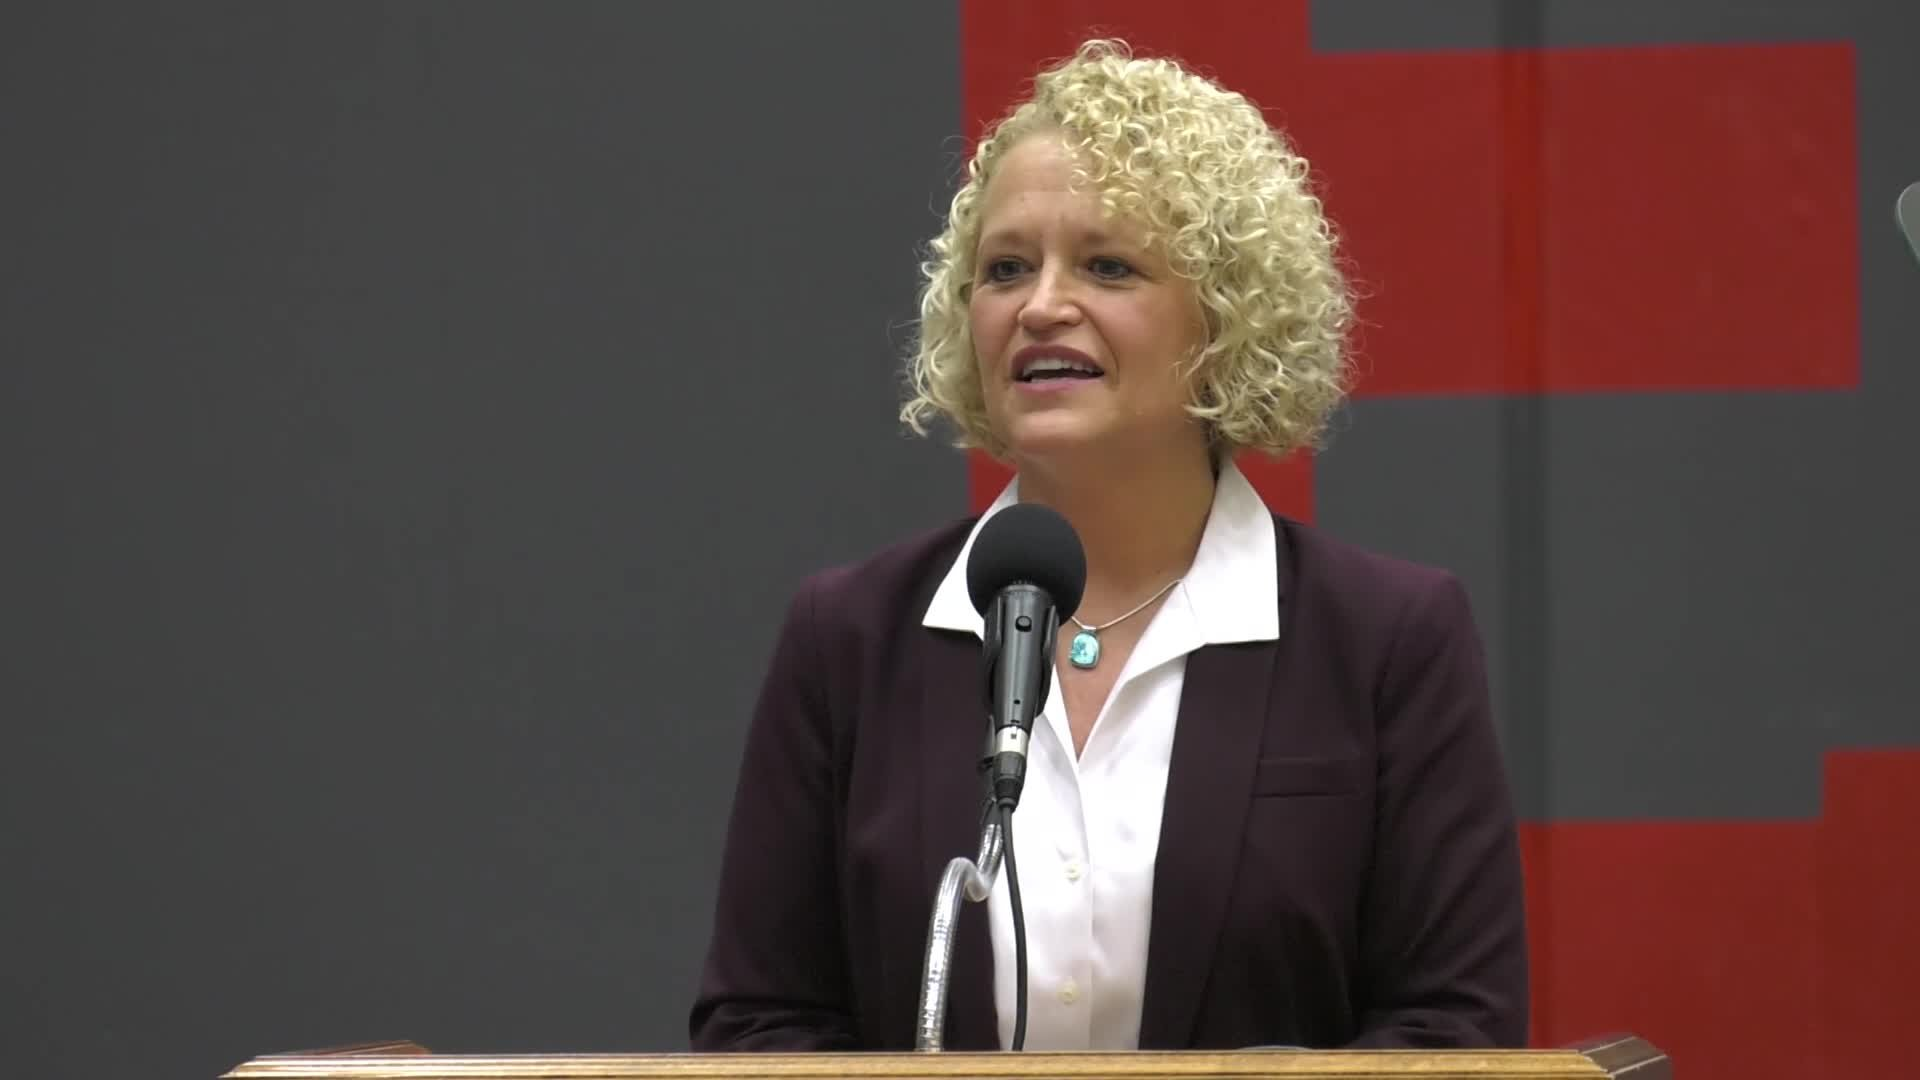 2019 State of the City address - Salt Lake City Mayor, Jackie Biskupski